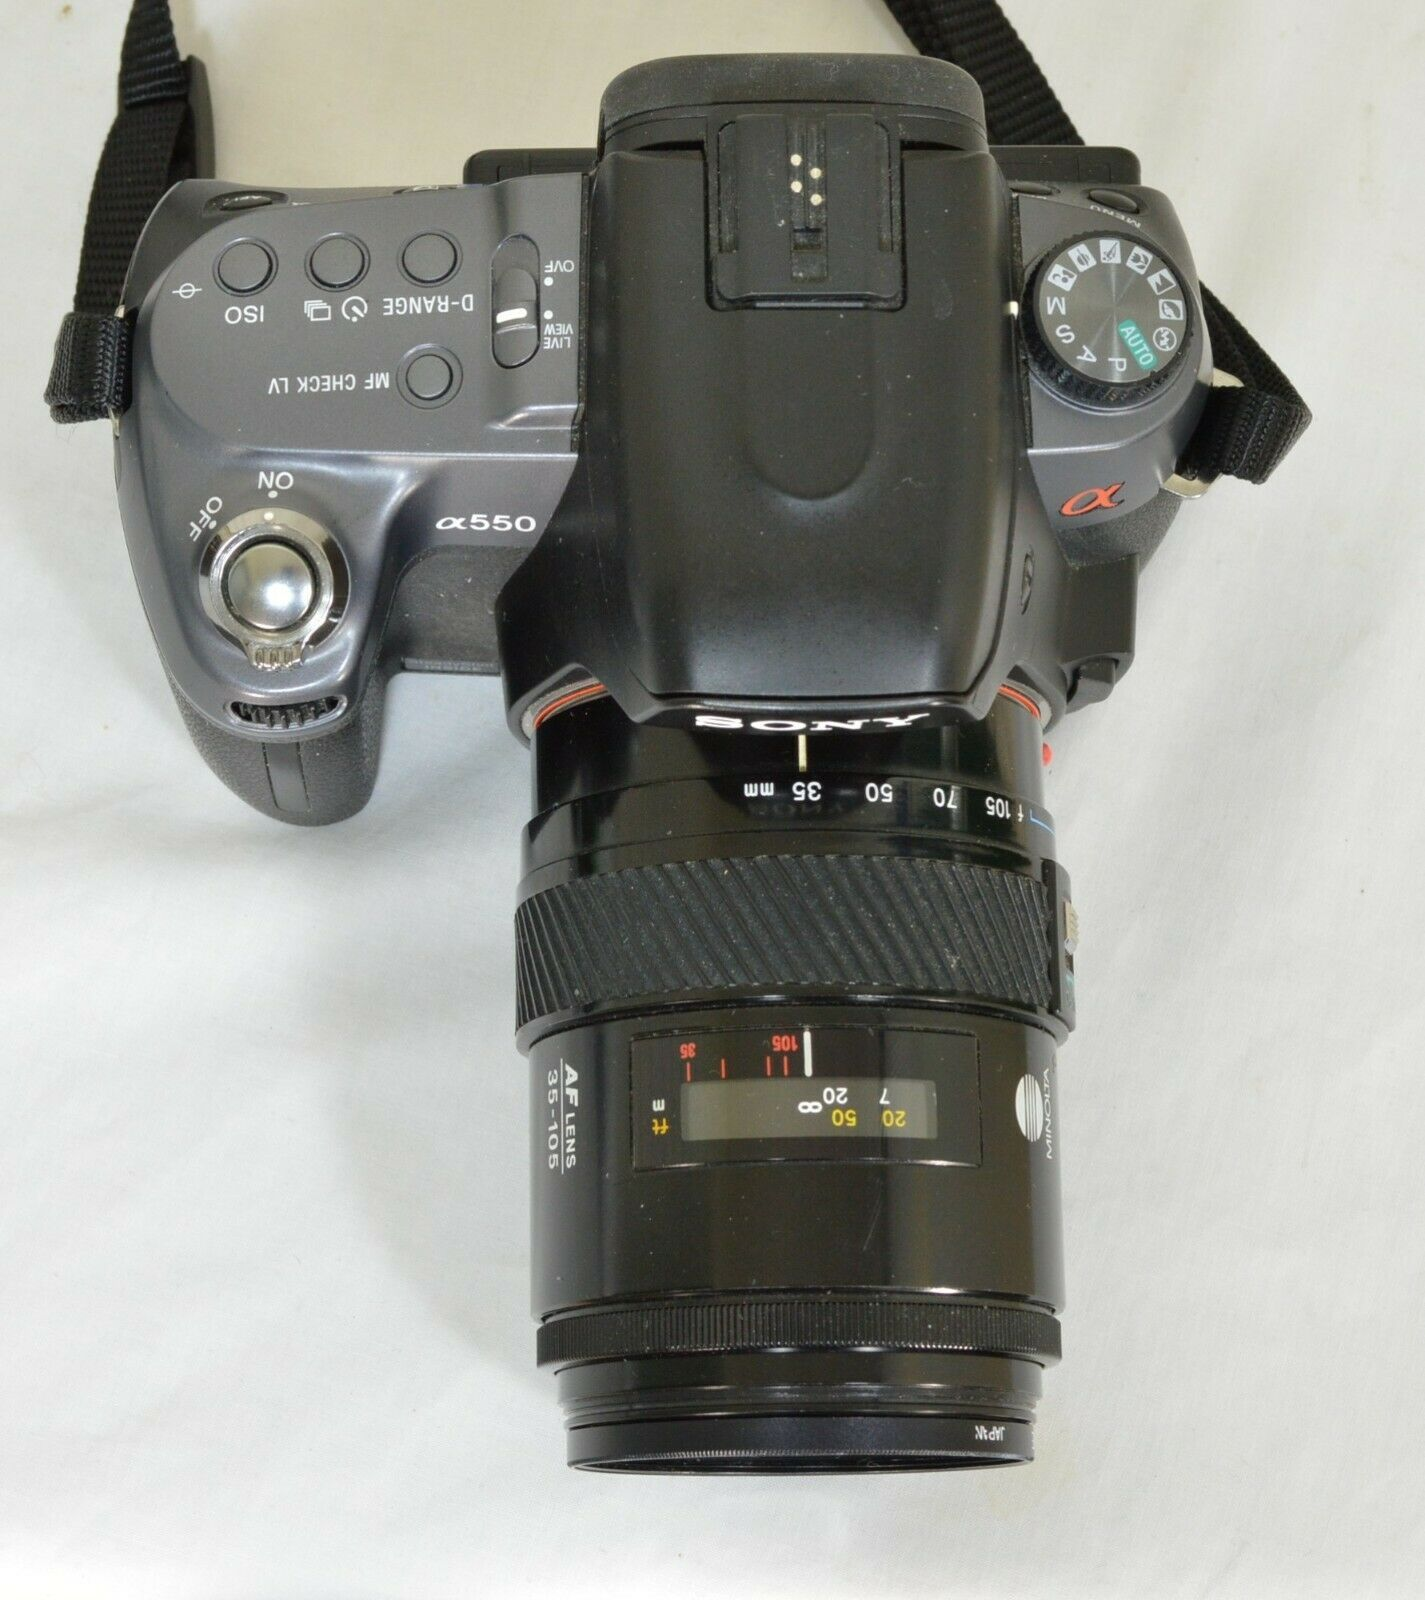 Sony Alpha DSLR-A550 14.2MP DSLR Camera Minolta Maxxum 35-105mm f/3.5-4.5 AF Len image 11